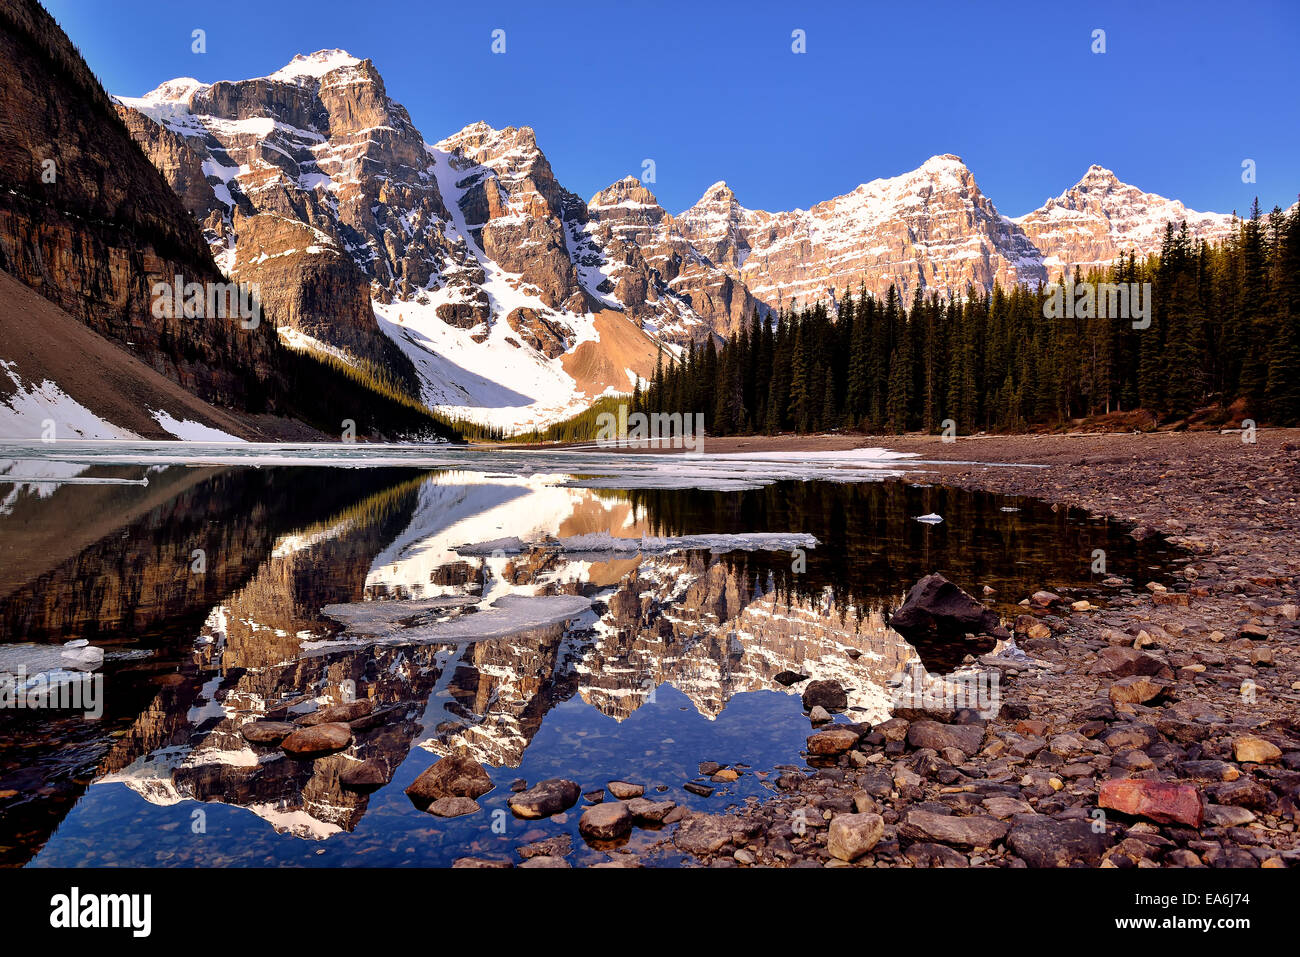 Canada, Banff National Park, View of Moraine Lake and Valley of the Ten Peaks Stock Photo